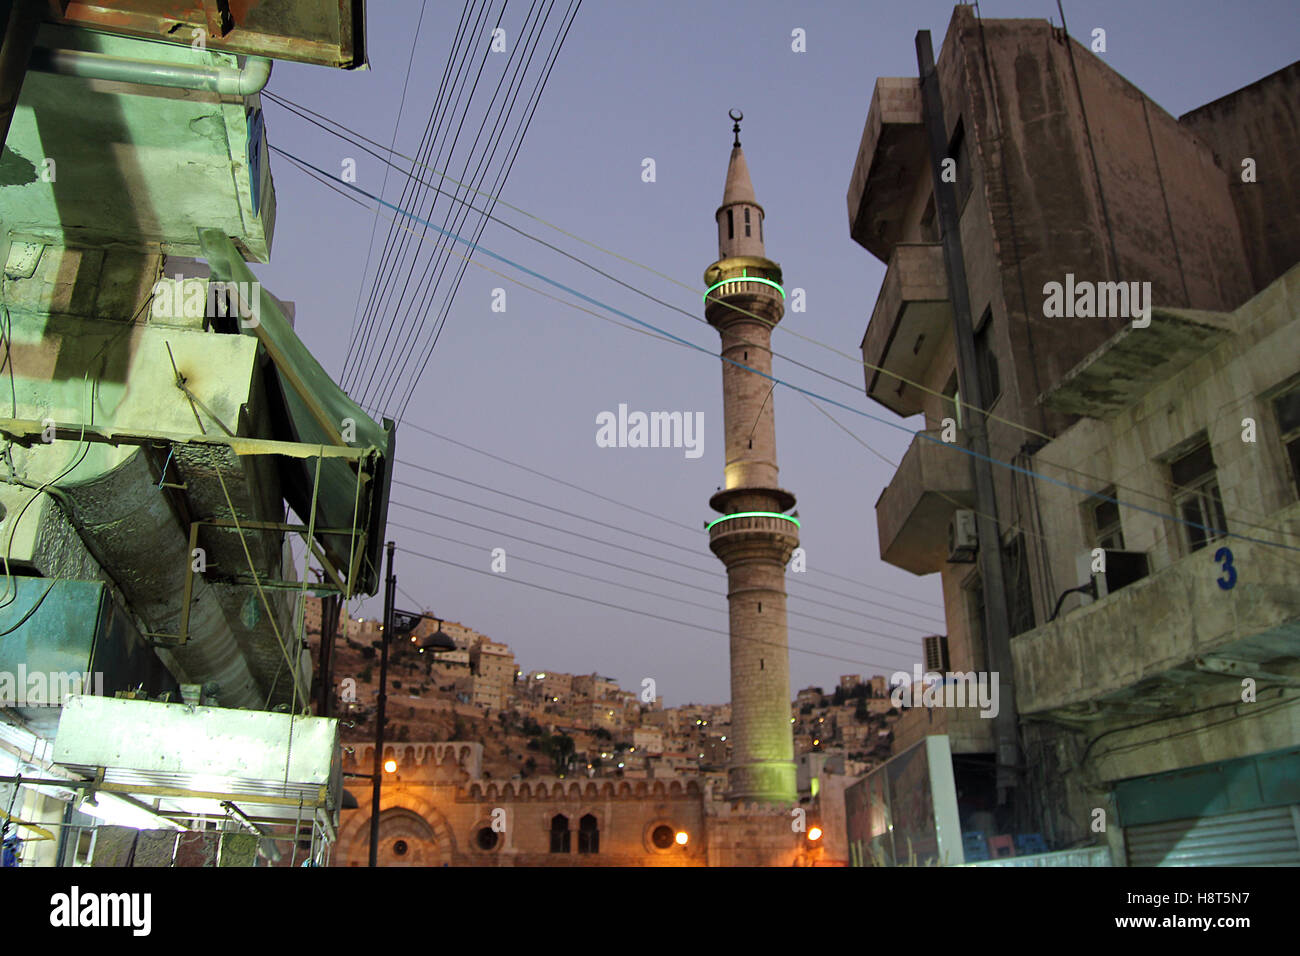 Capitale de la JORDANIE - Amman. Photo Stock